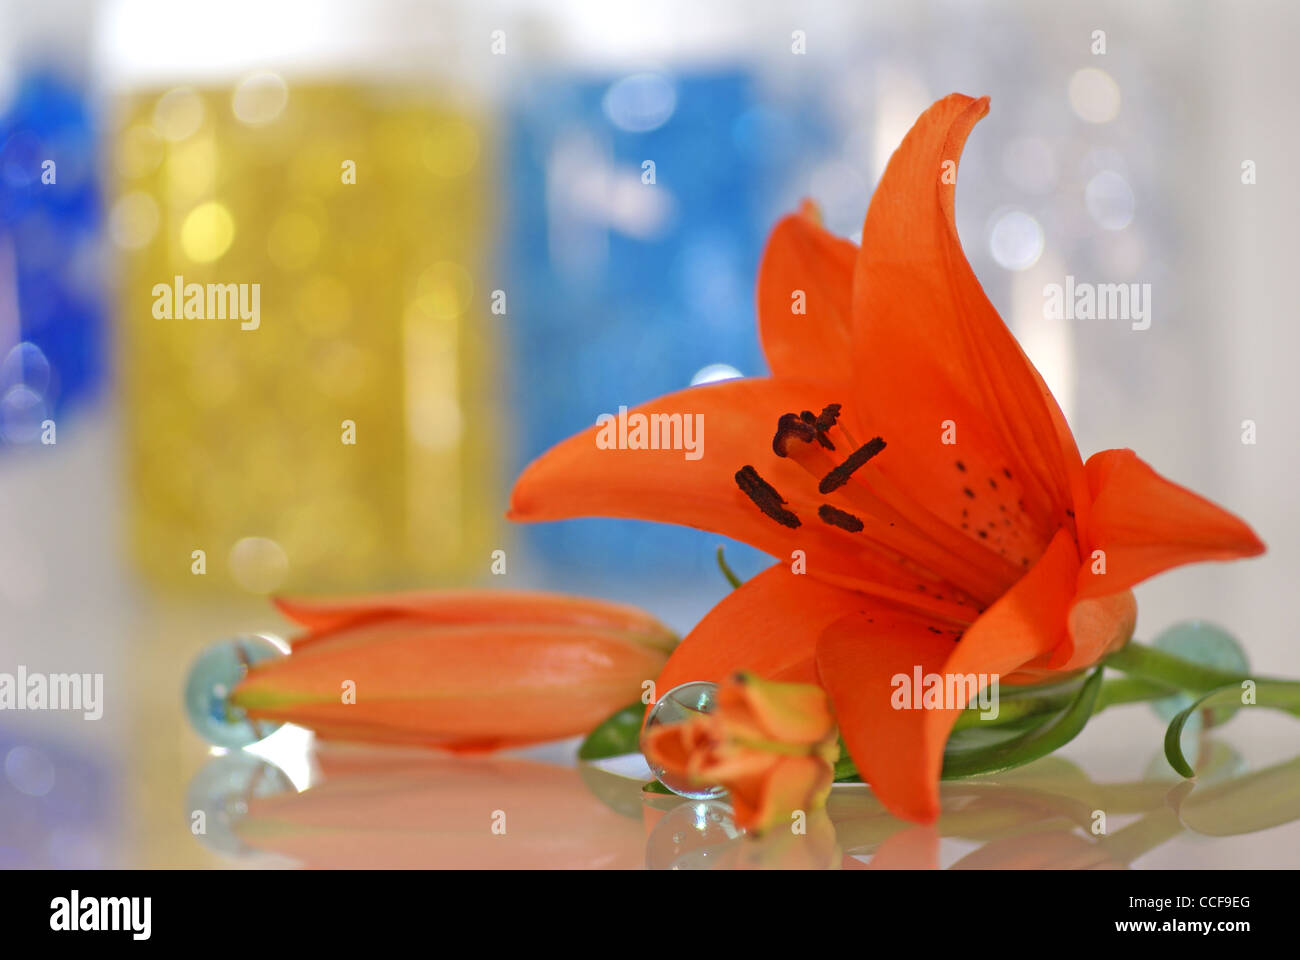 orange lily with a remedy for aroma therapy as a background - Stock Image